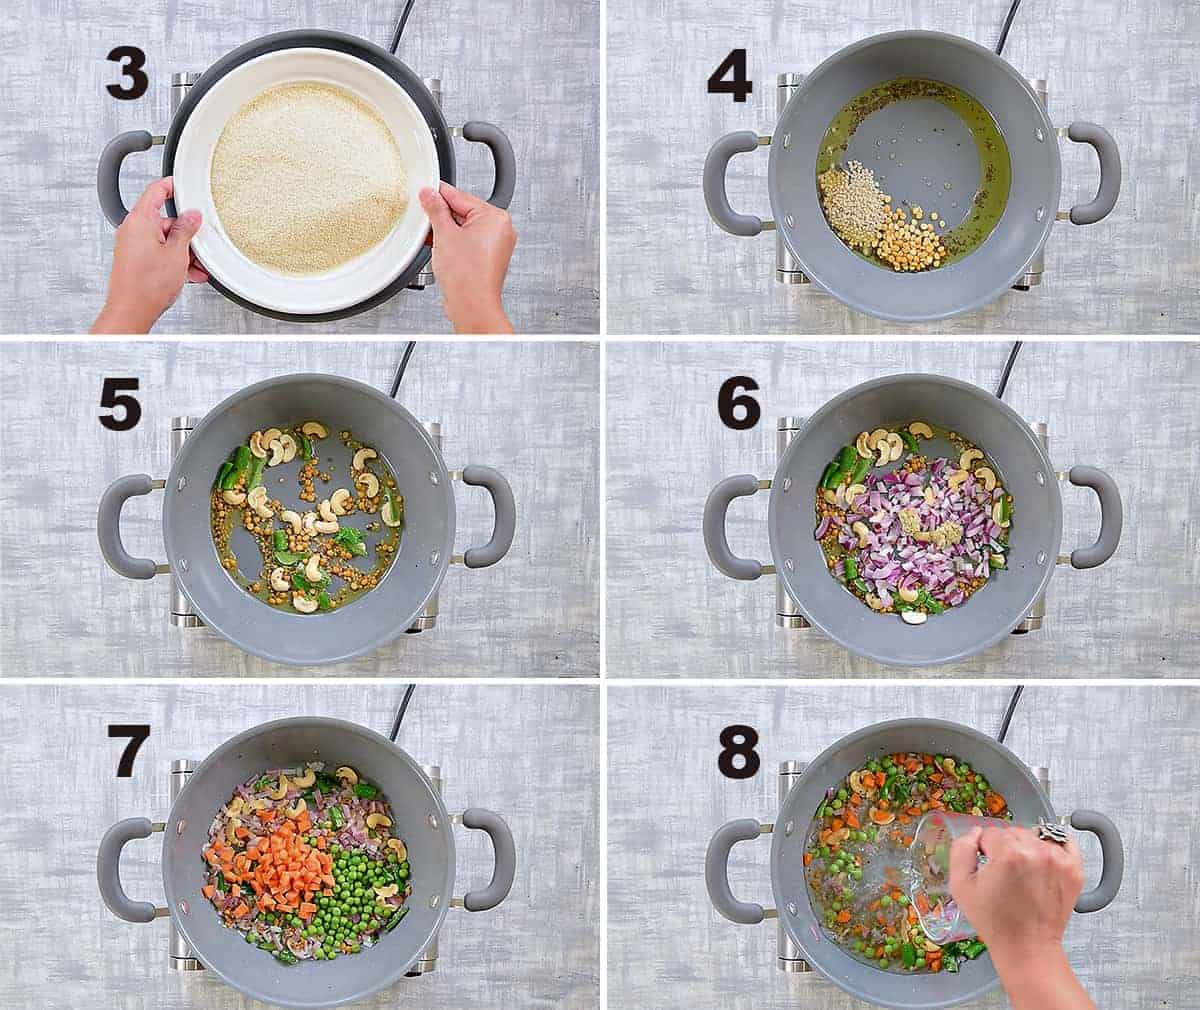 Step by step collage of making Rava Upma recipe in pan on stove top.